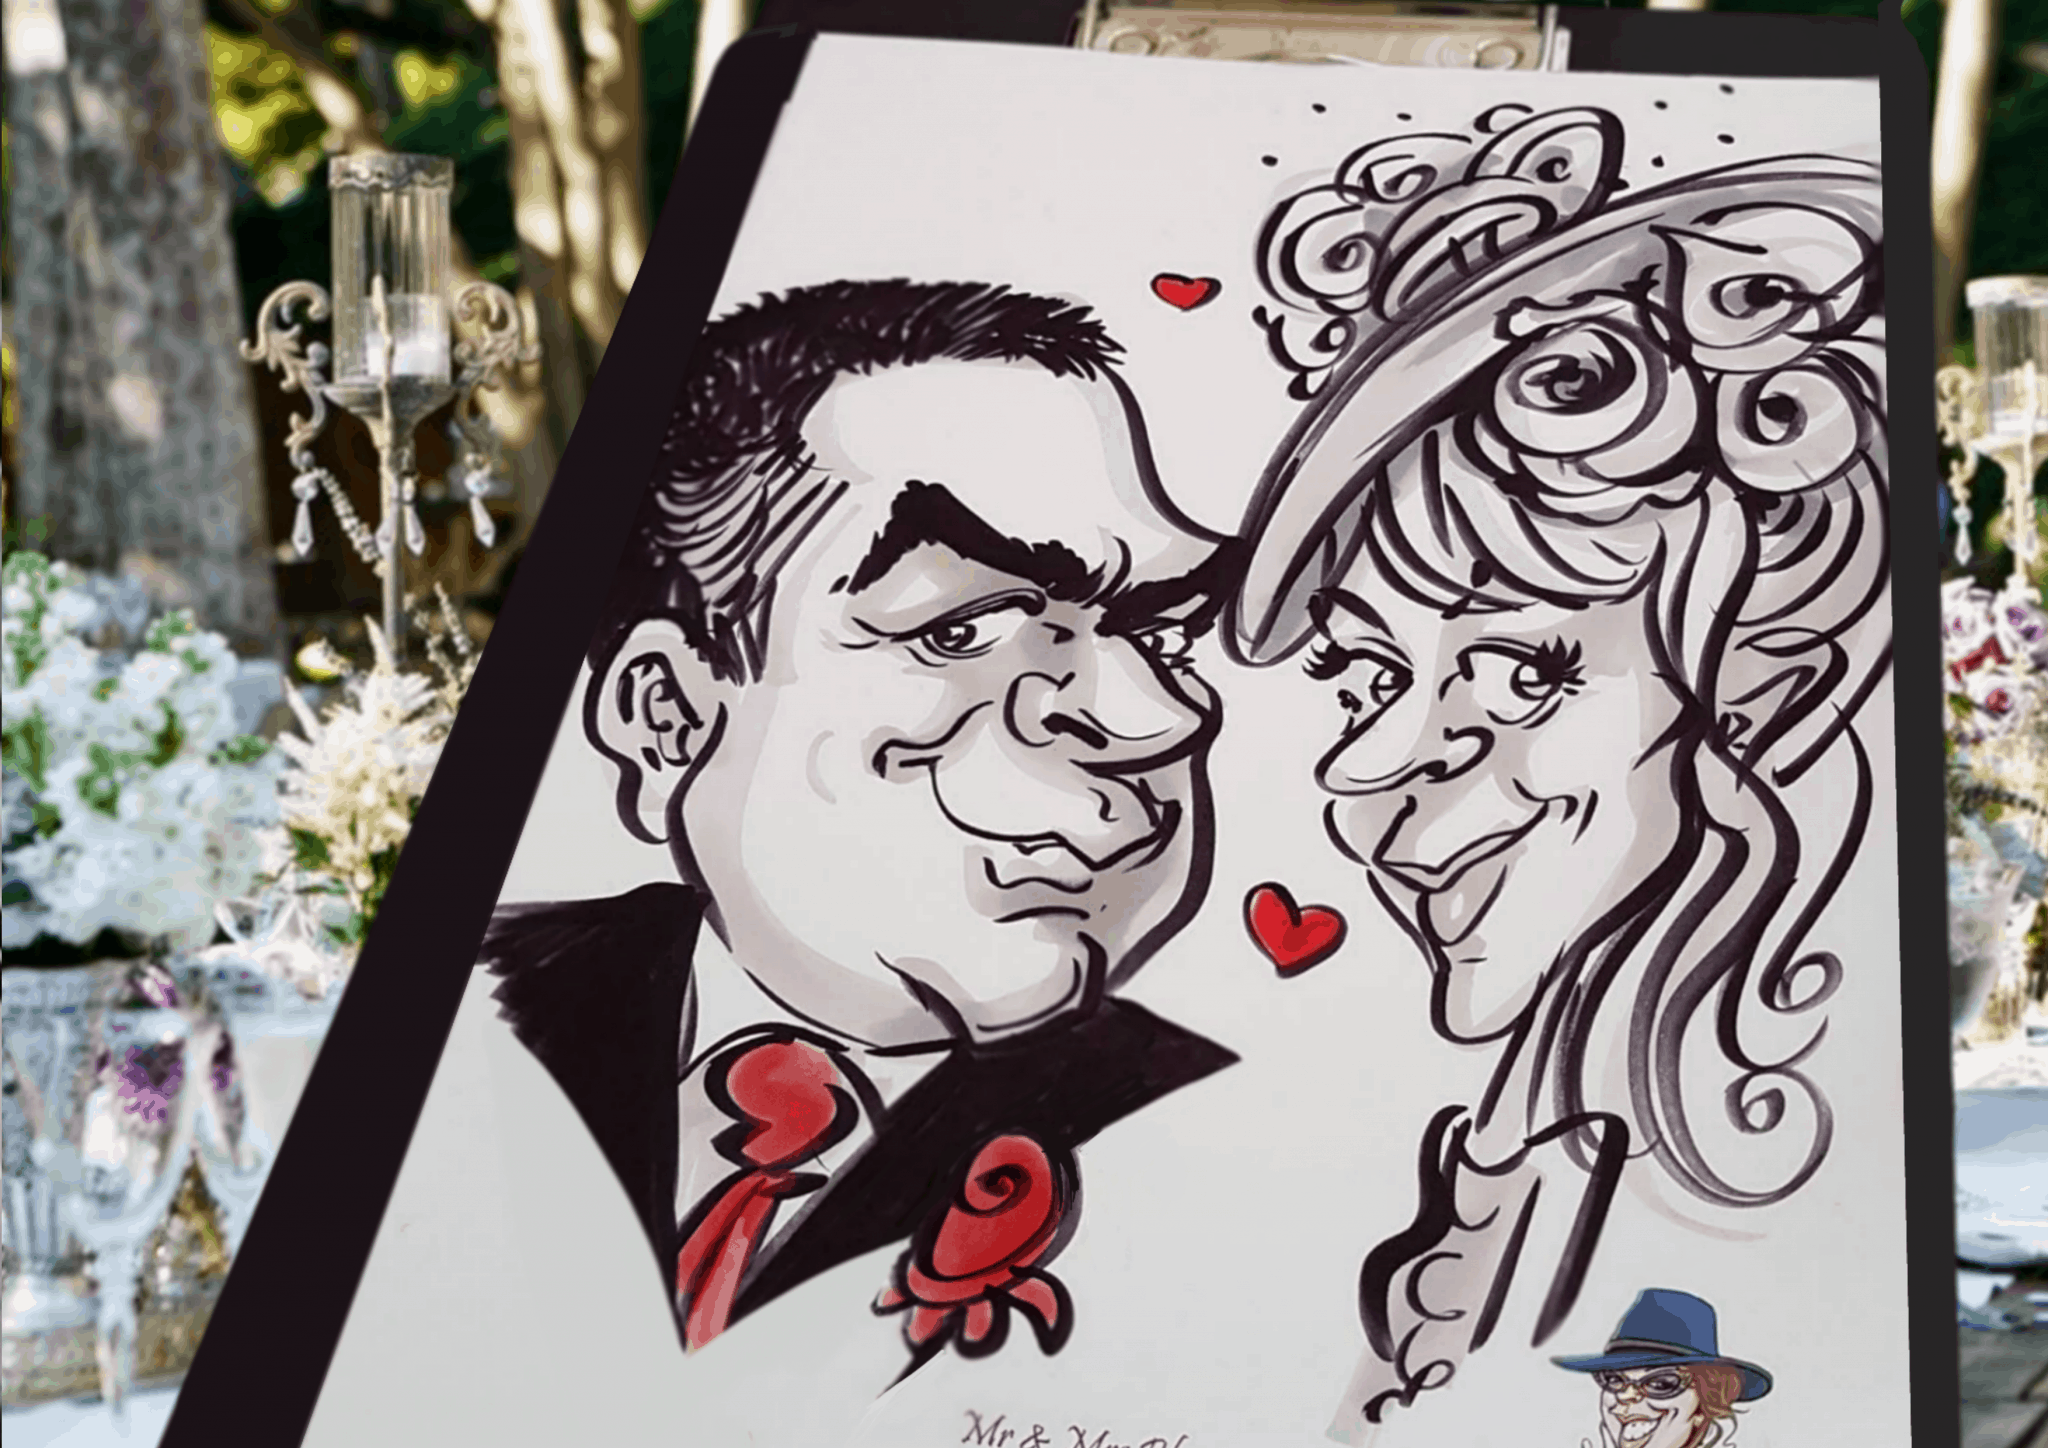 peterborough weddings bride and groom caricature traditional pen and ink – Wicked Caricatures Ltd – by caricaturist Luisa Calvo